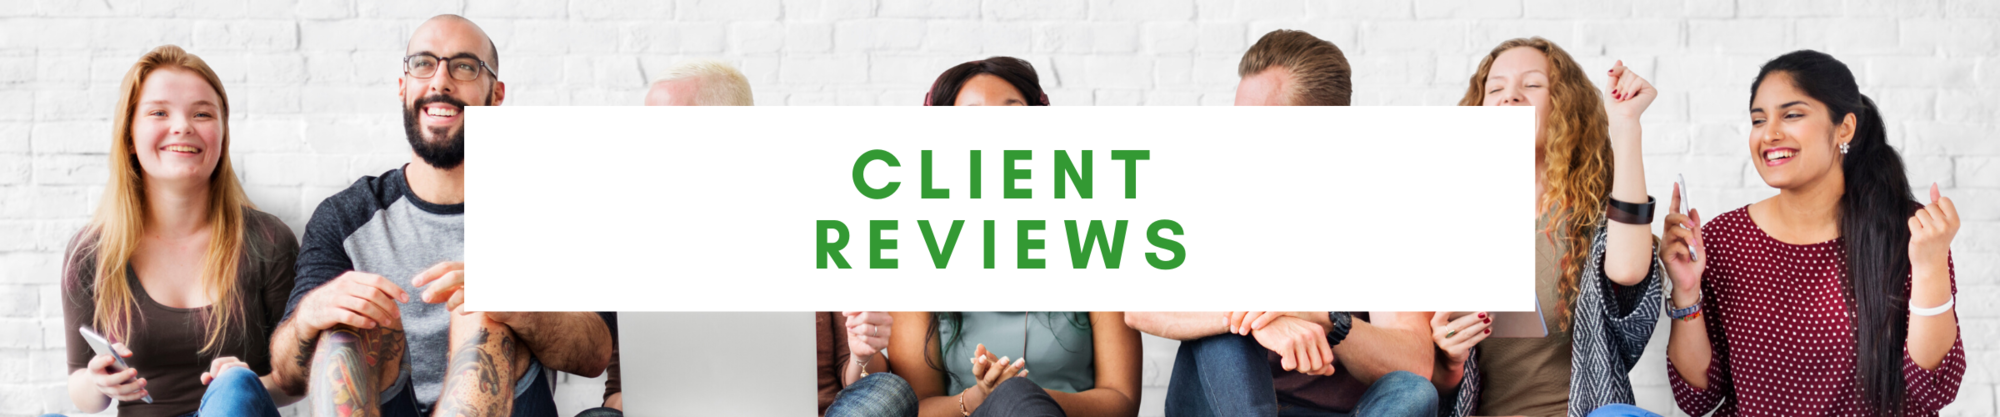 Client Reviews | Sherri Hines - Realtor | Kansas City Homes